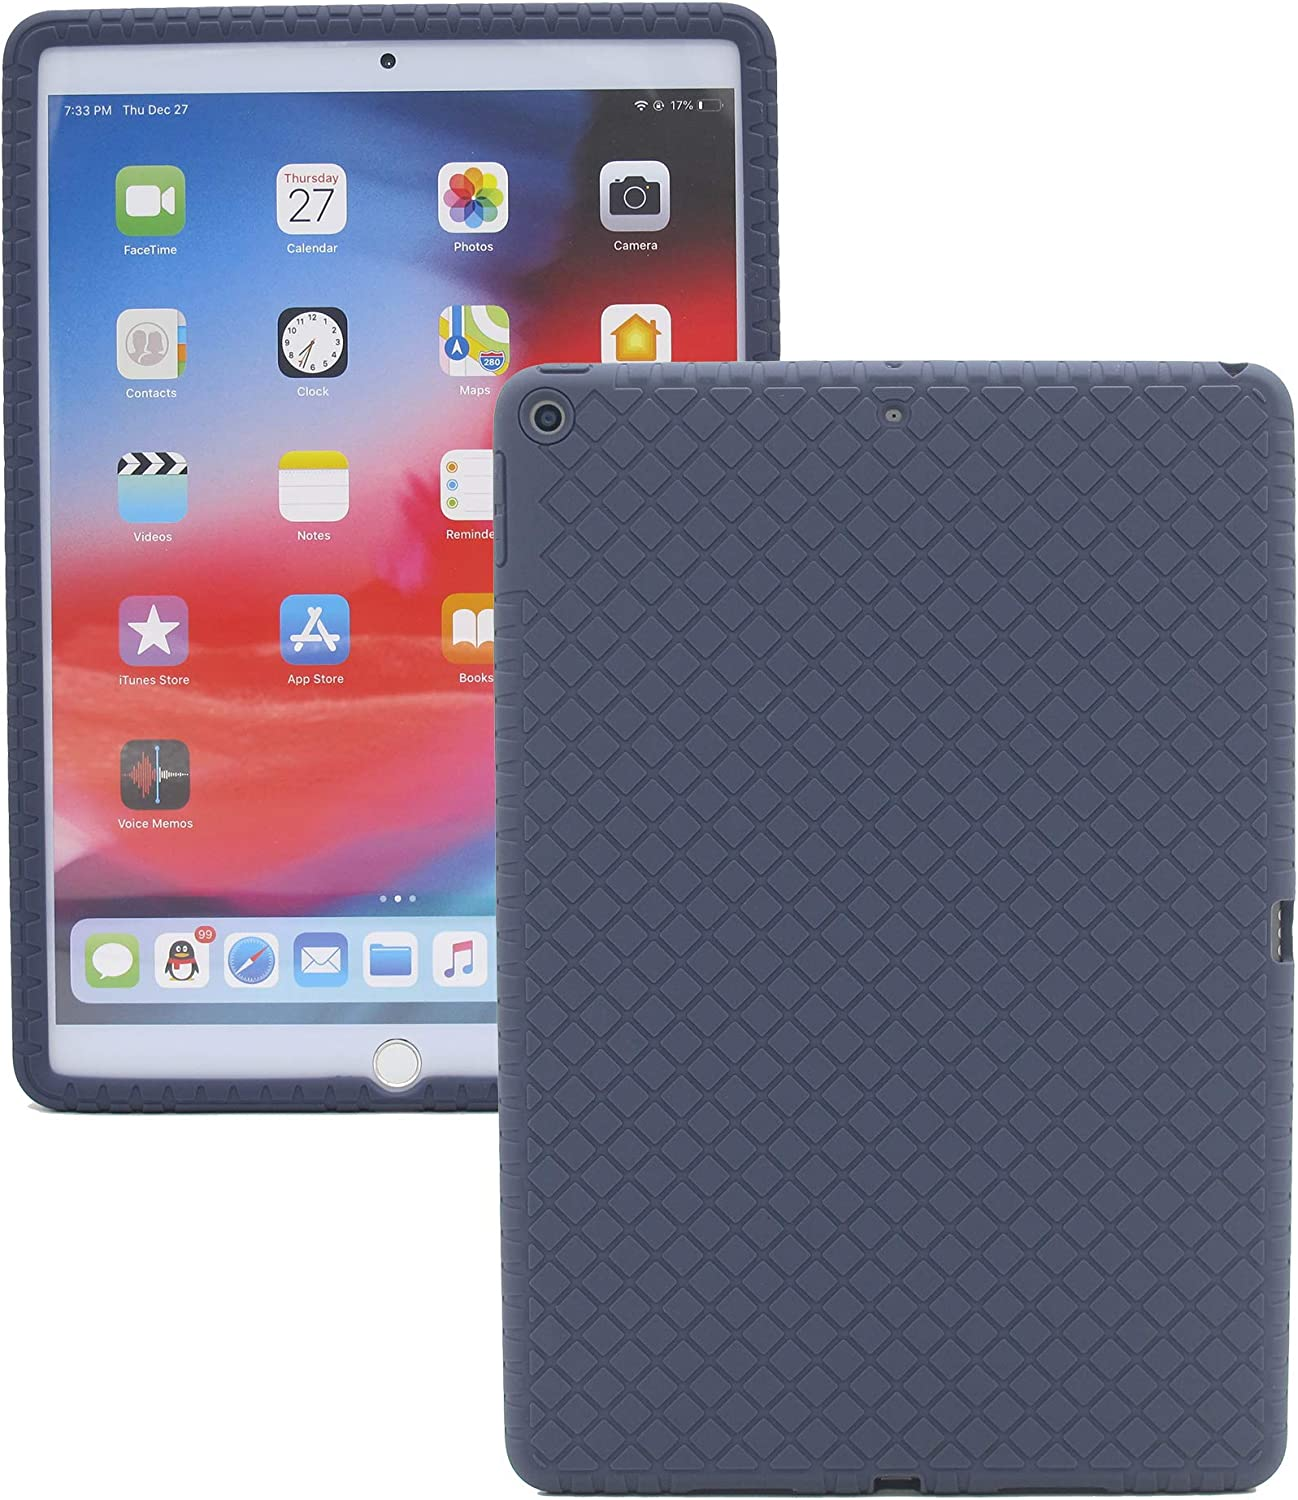 Veamor iPad 9.7 Inch 2018/2017 Silicone Back Case Cover, Anti Slip Rubber Protective Skin Soft Bumper for Apple iPad 6th / 5th Gen, Kids Friendly/Ultra Slim/Lightweight/Shockproof (Midnight Blue)